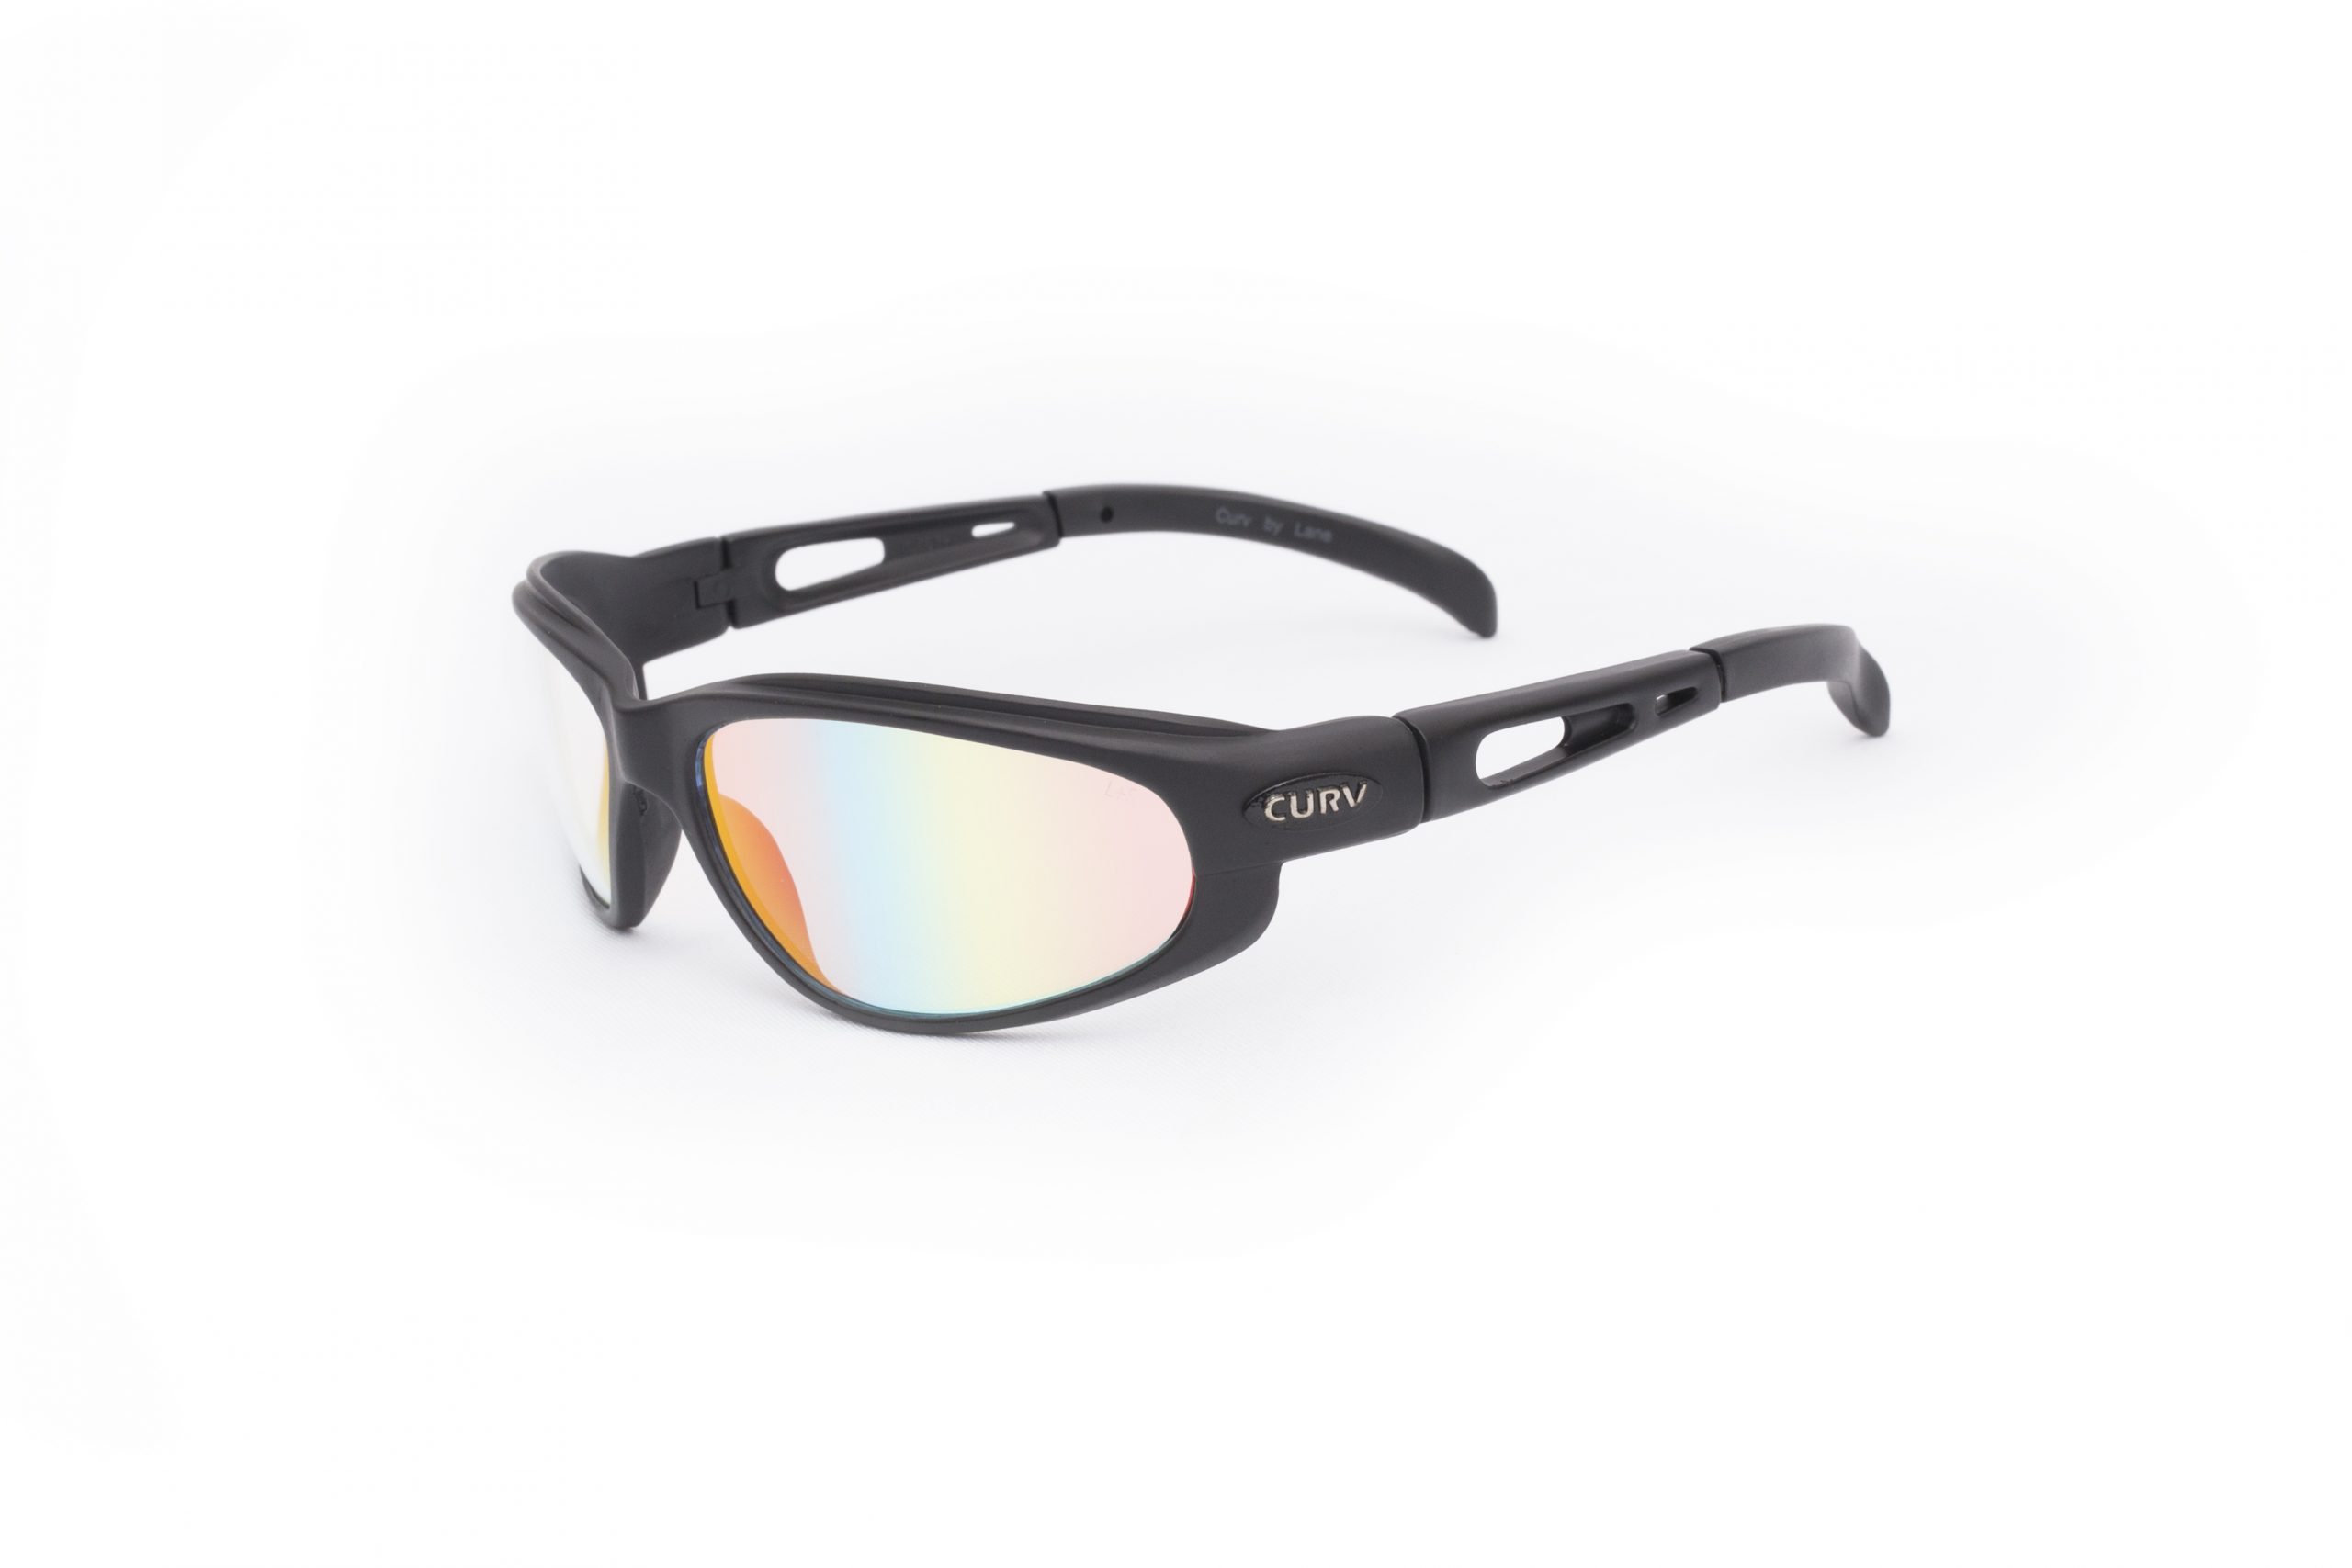 01-31 - Curv Black REVO Sunglasses with Fire Red Mirror Lenses and Matte Black Frames